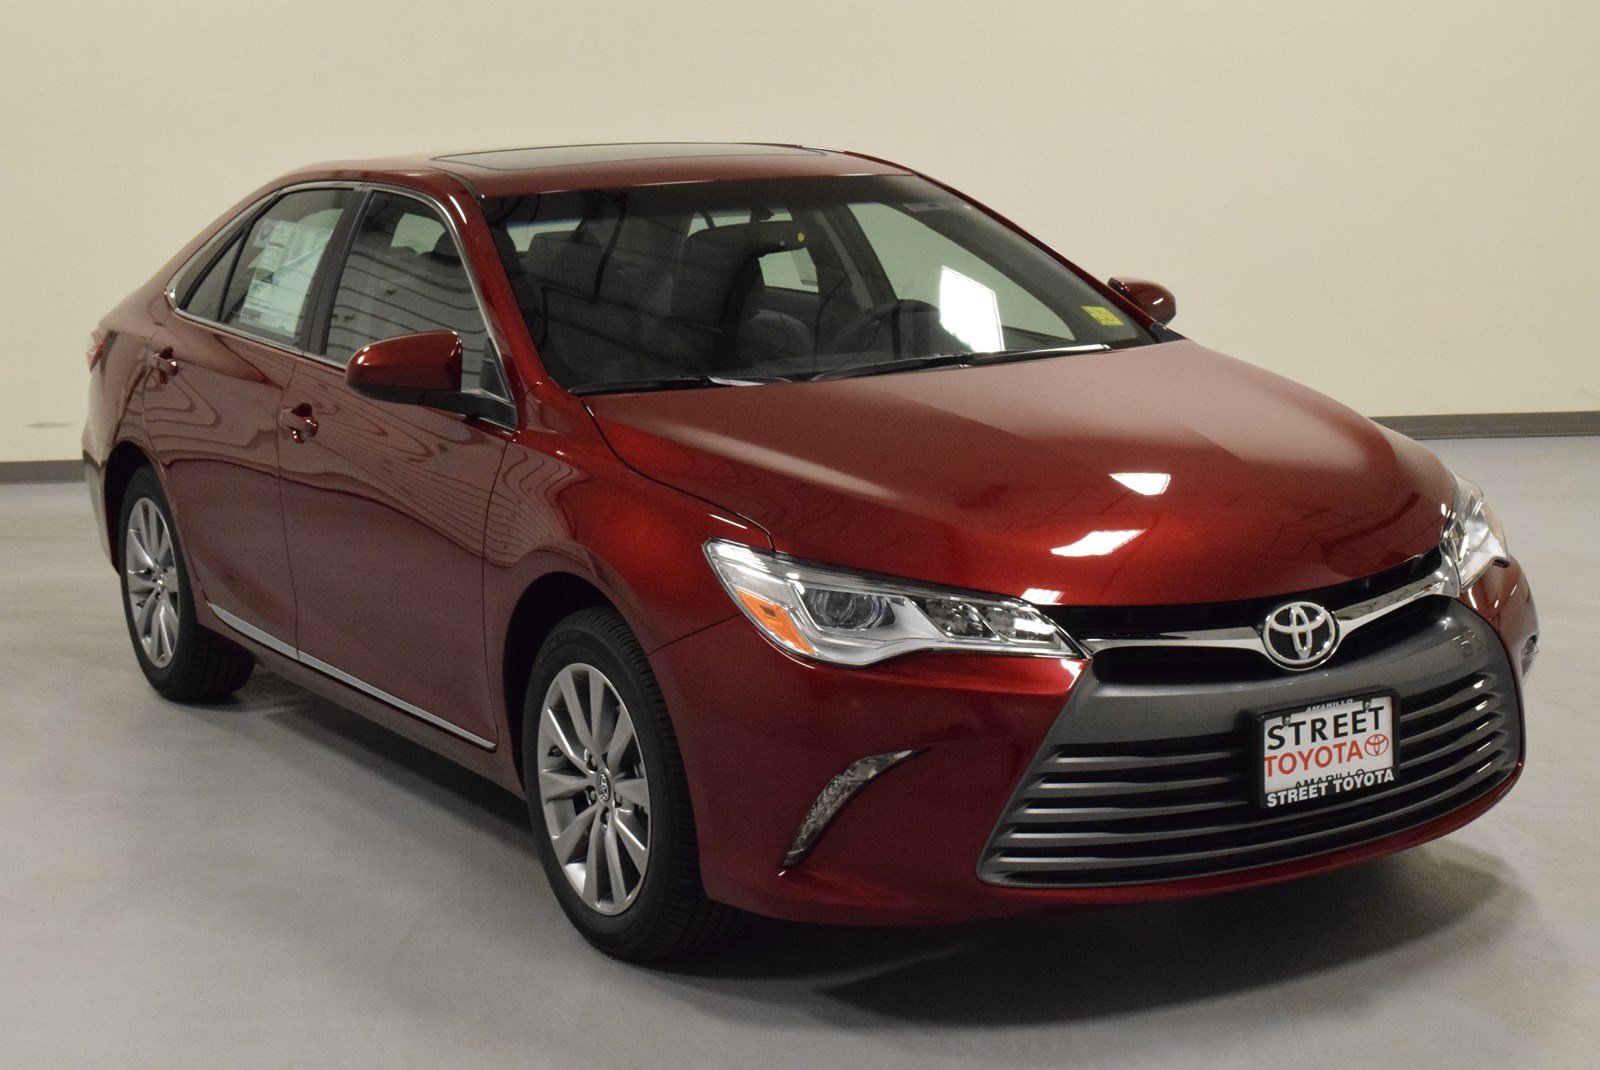 New 2017 Toyota Camry For Sale in Amarillo, TX | #17543